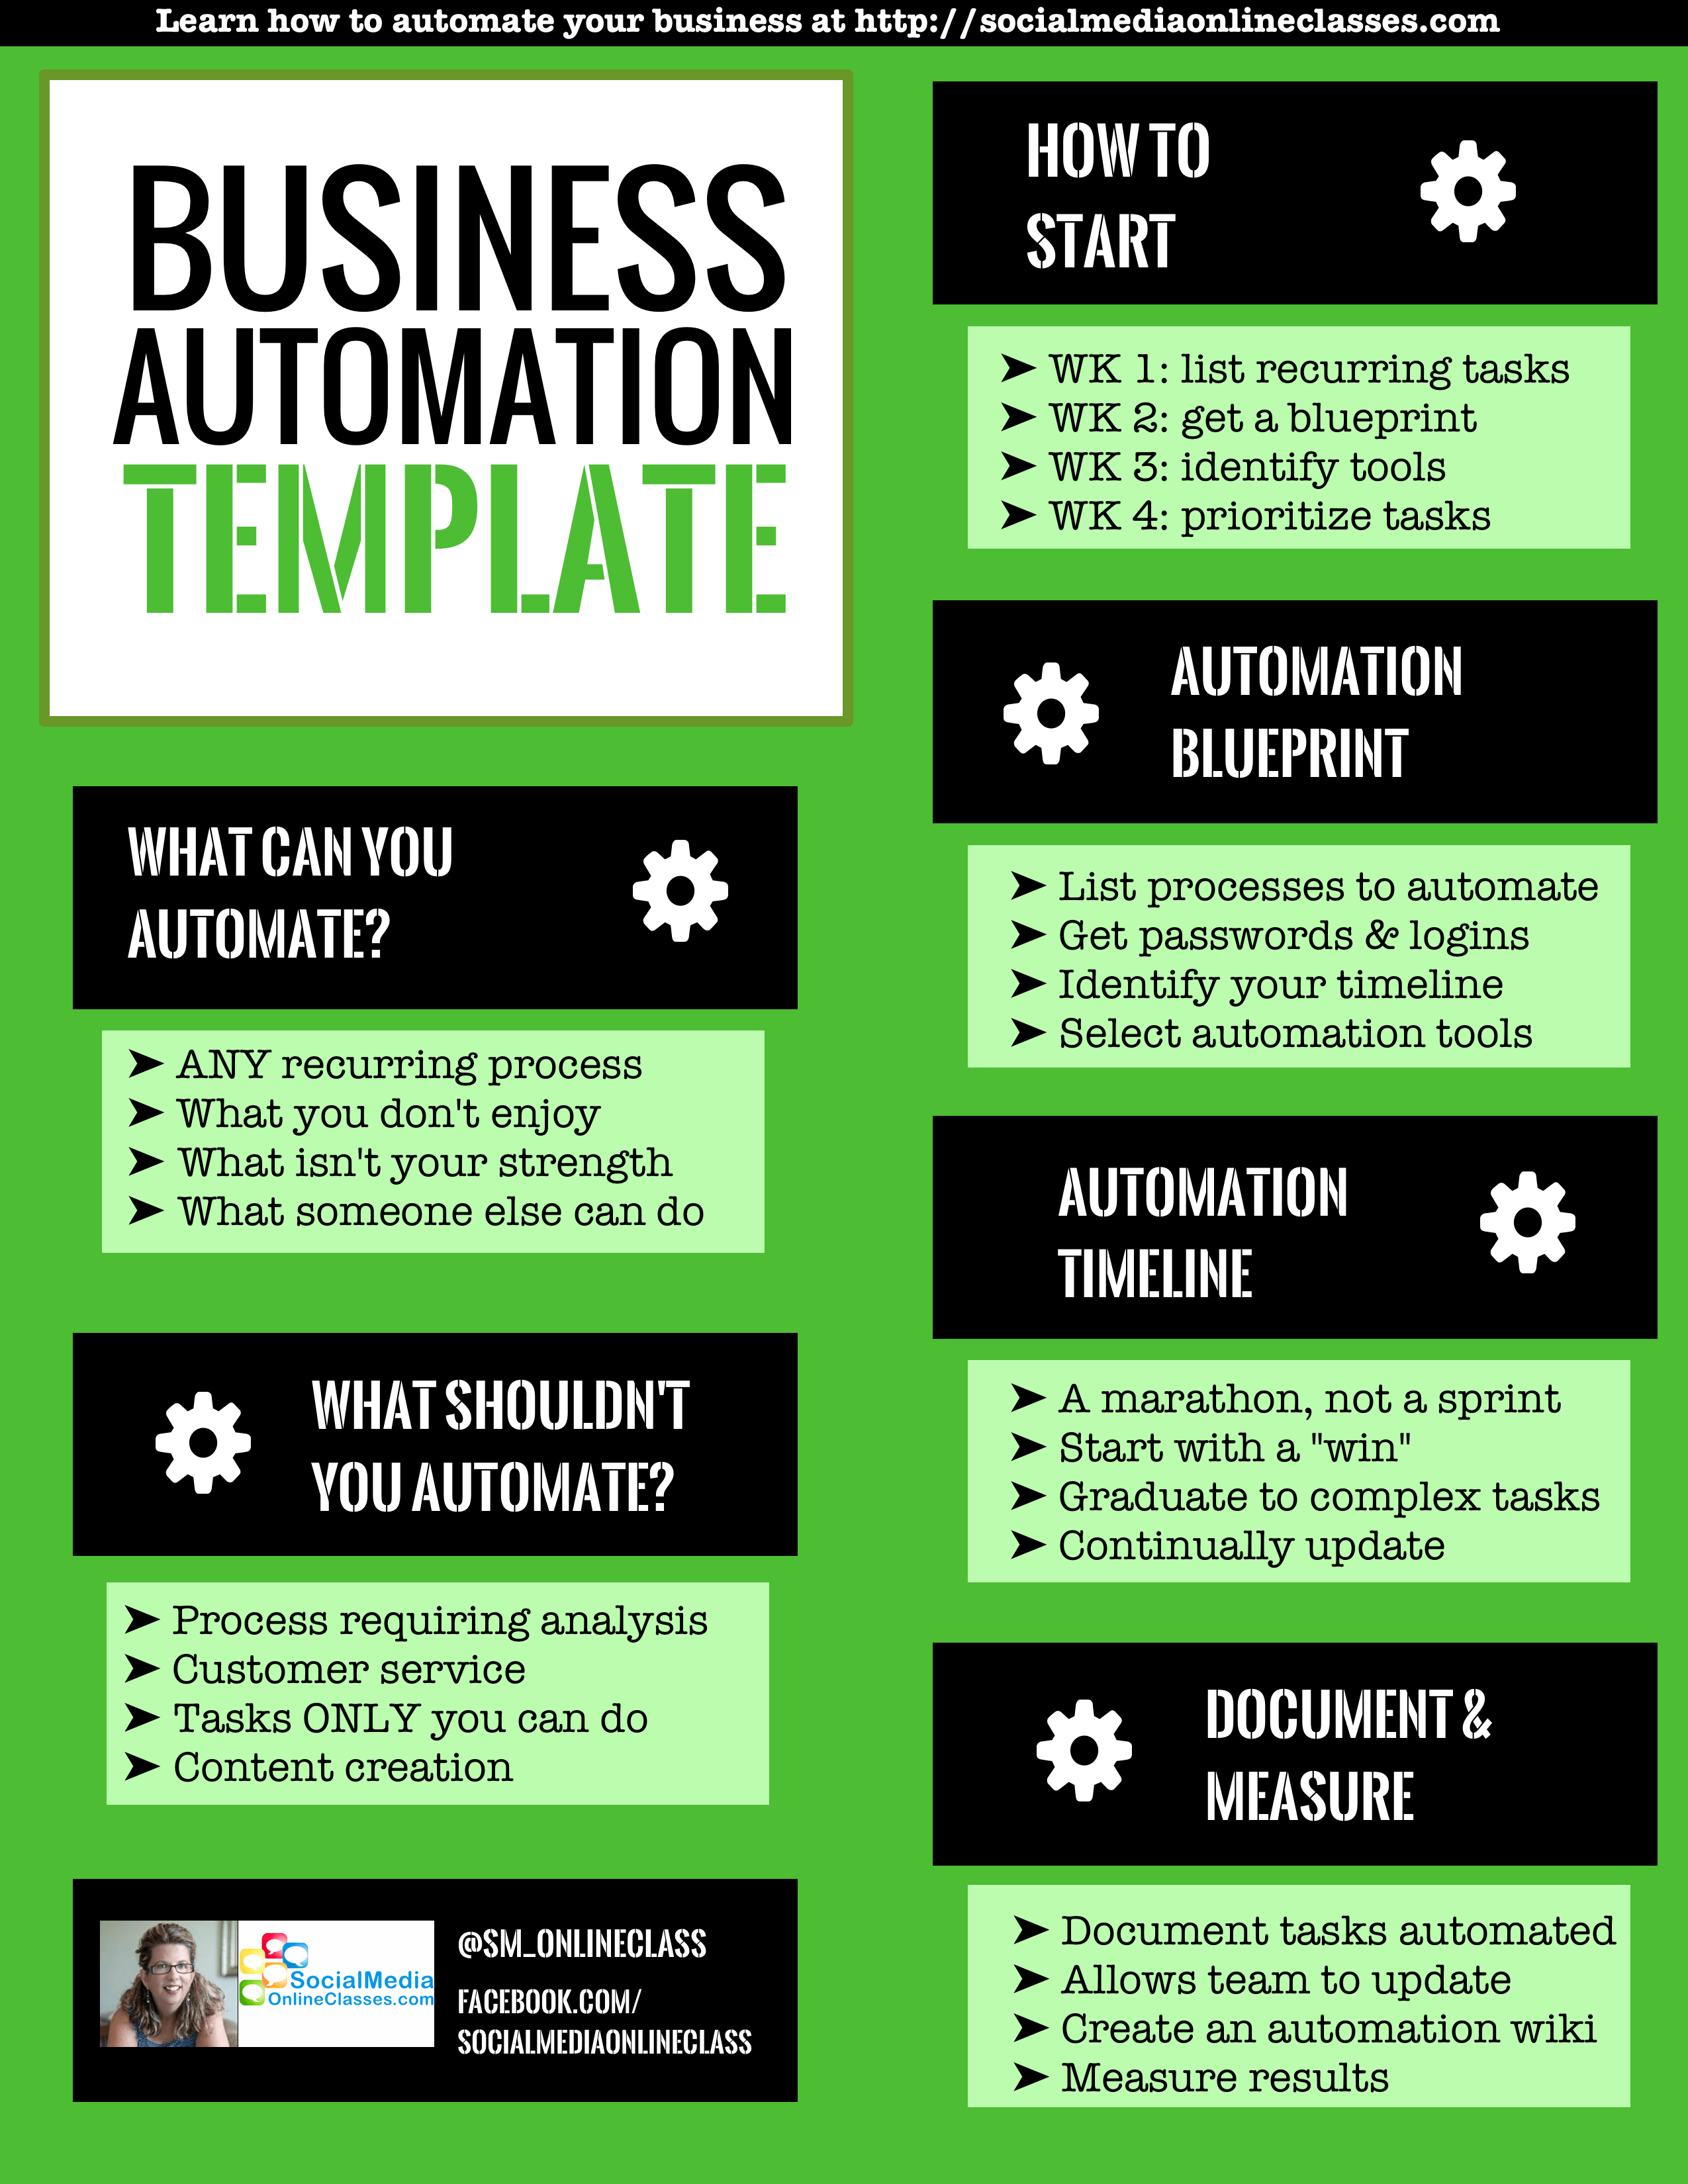 BUSINESS AUTOMATION TEMPLATE